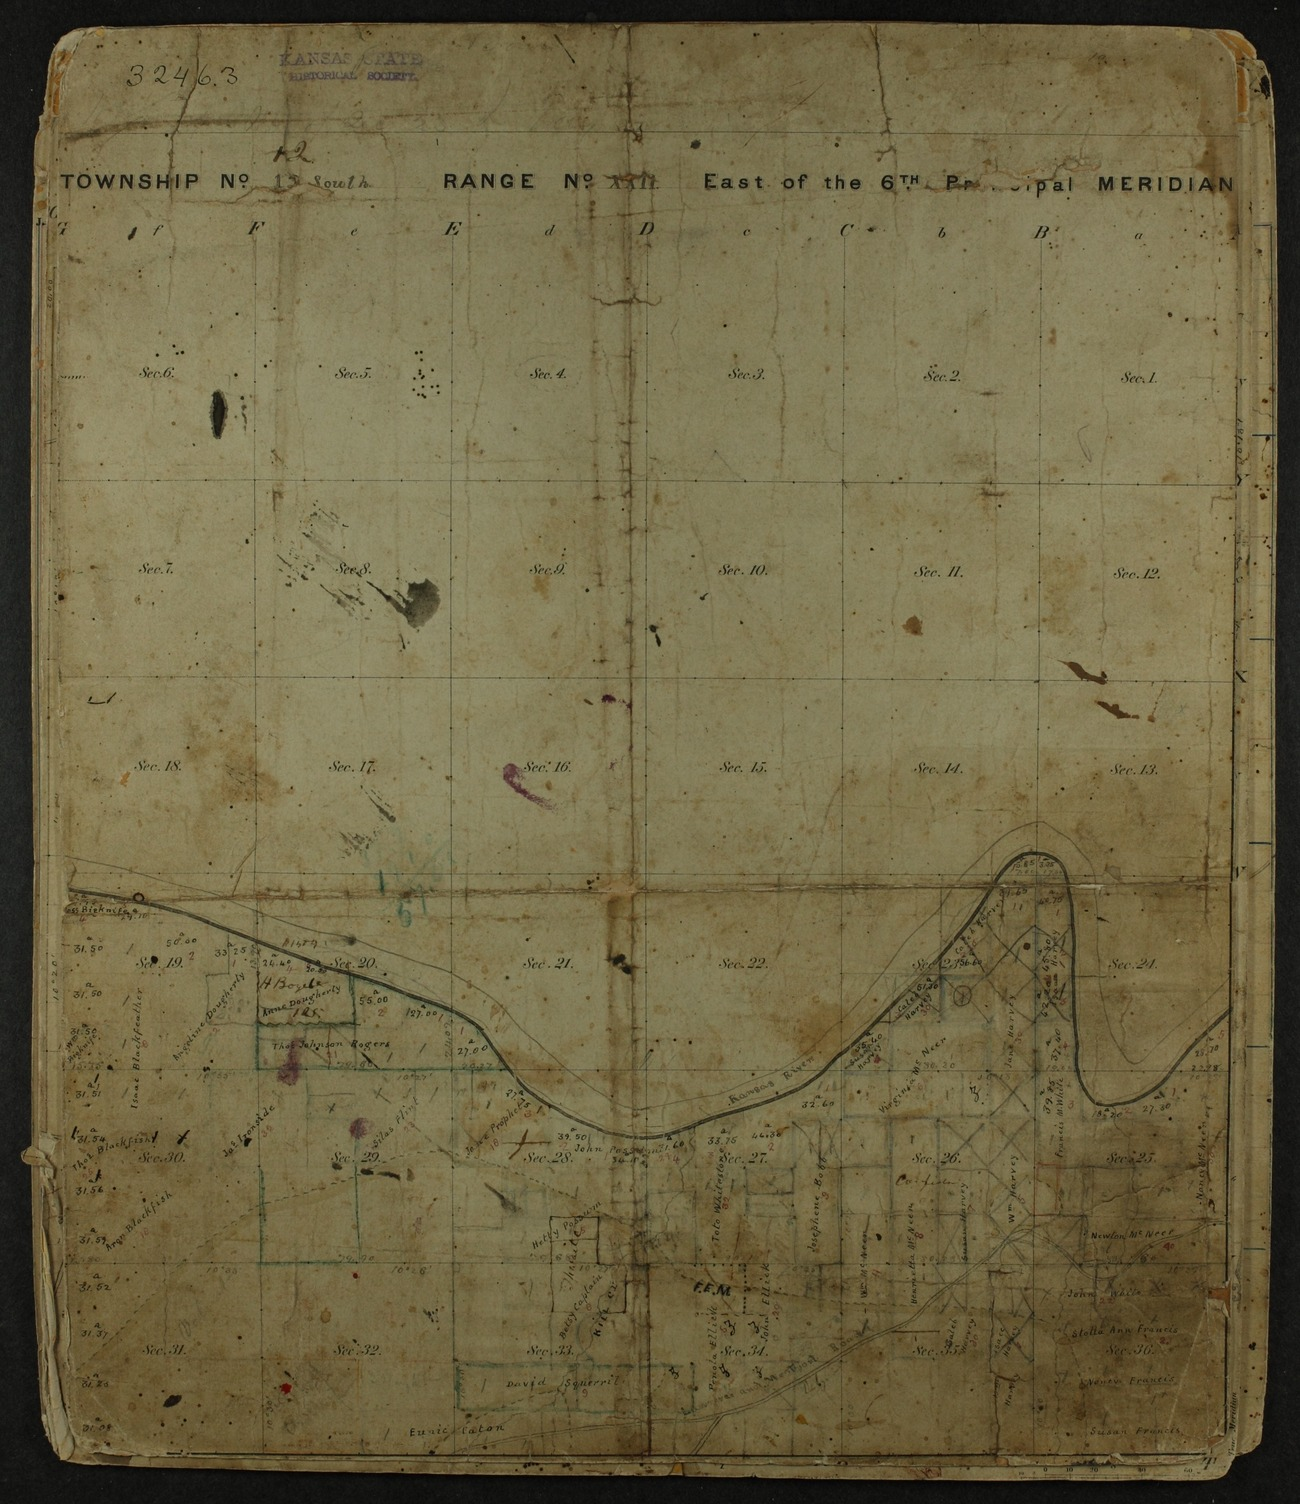 Shawnee Indian reservation plat maps of 1854 - 9